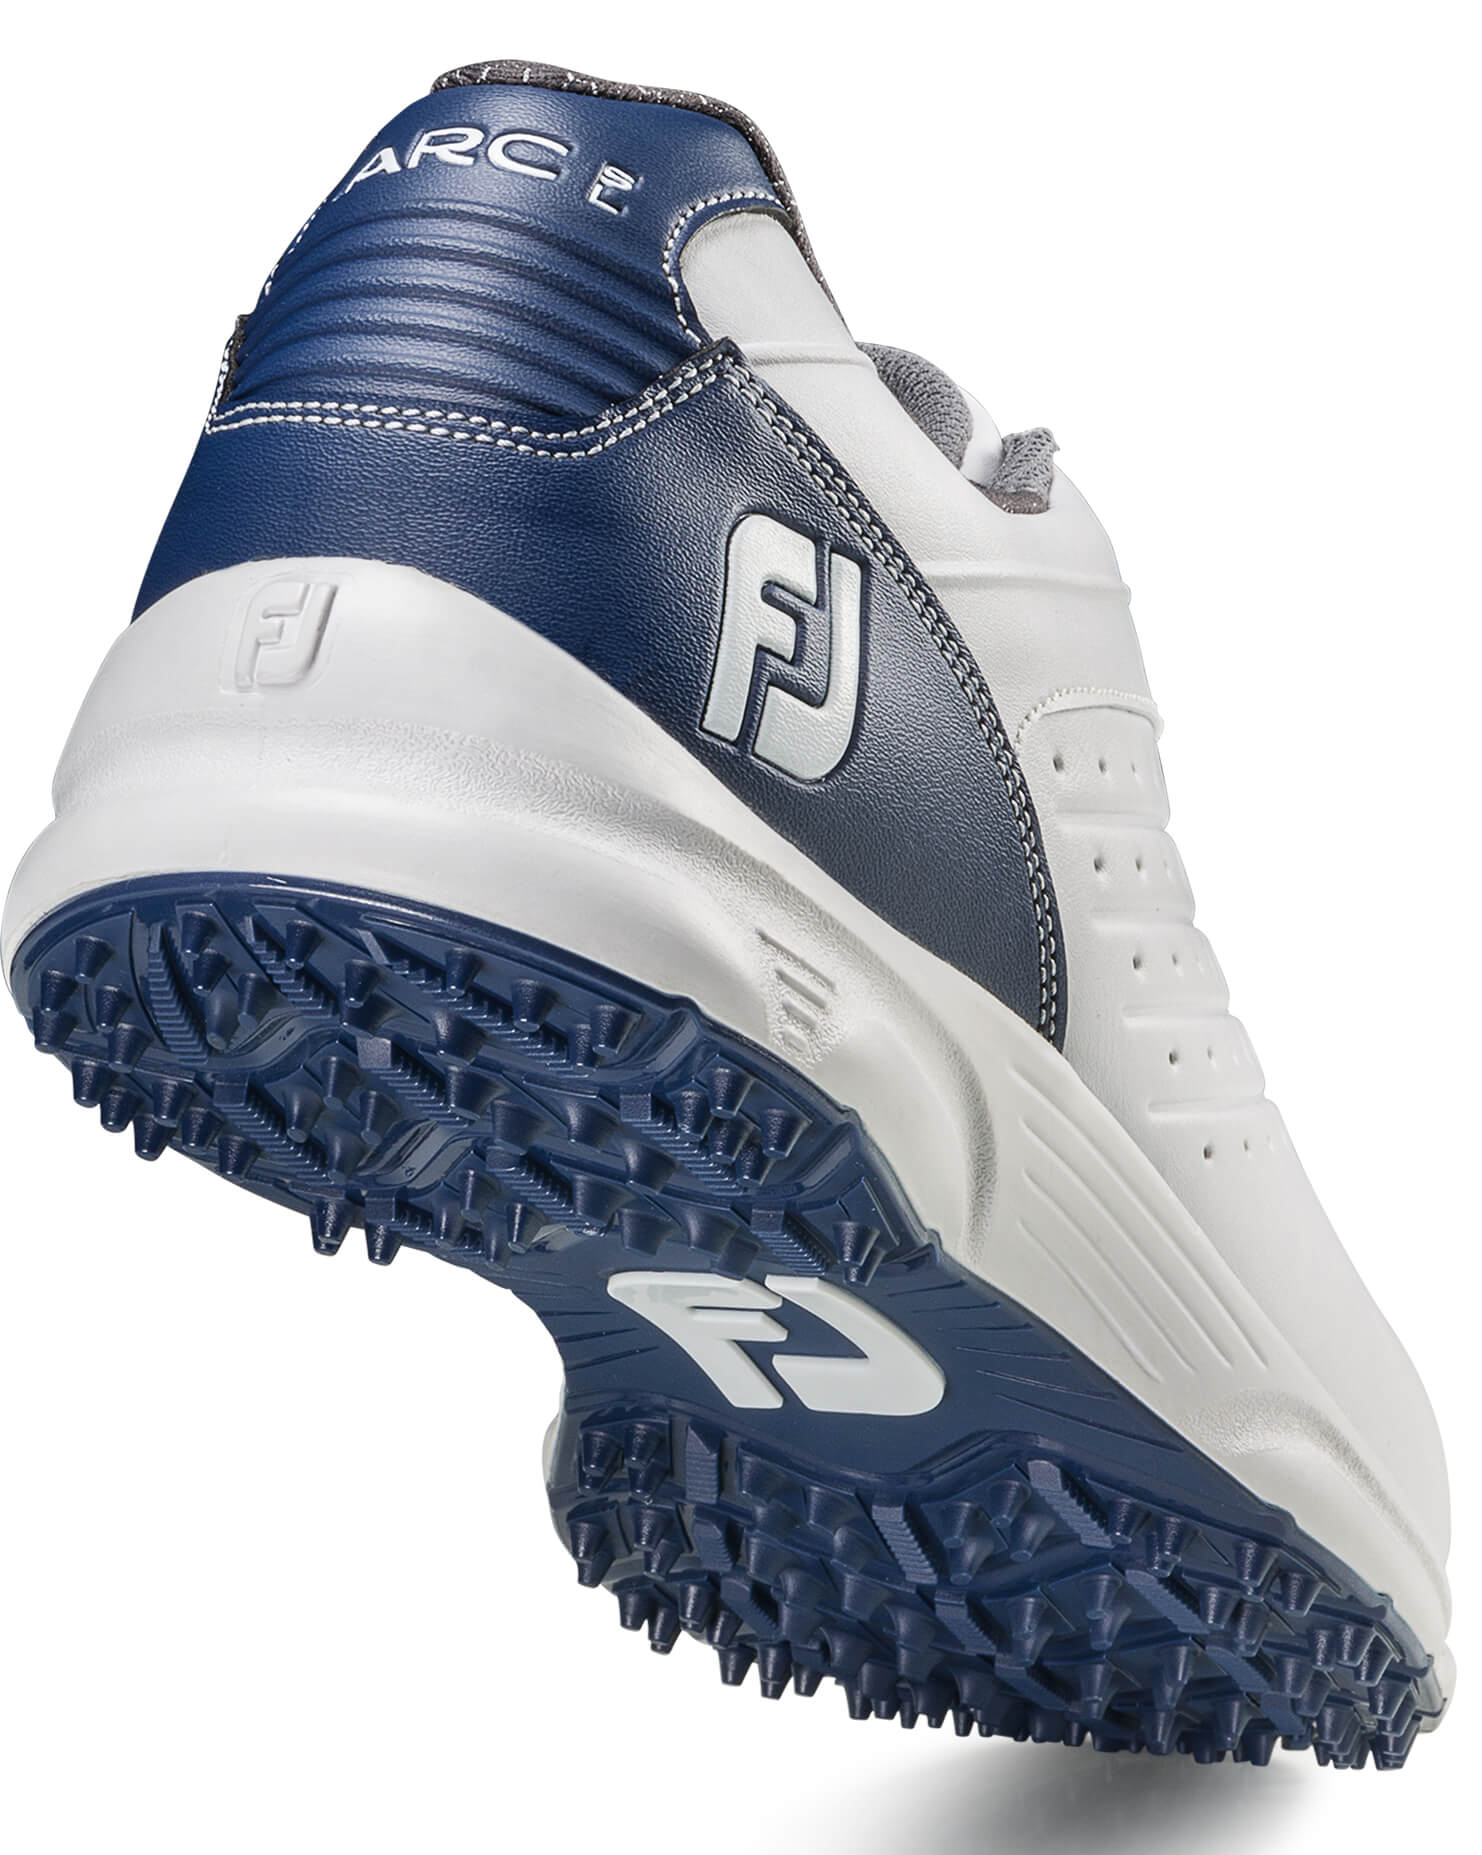 FootJoy-FJ-Arc-SL-Golf-Shoes-Men-039-s-Spikeless-Waterproof-New-Choose-color thumbnail 8